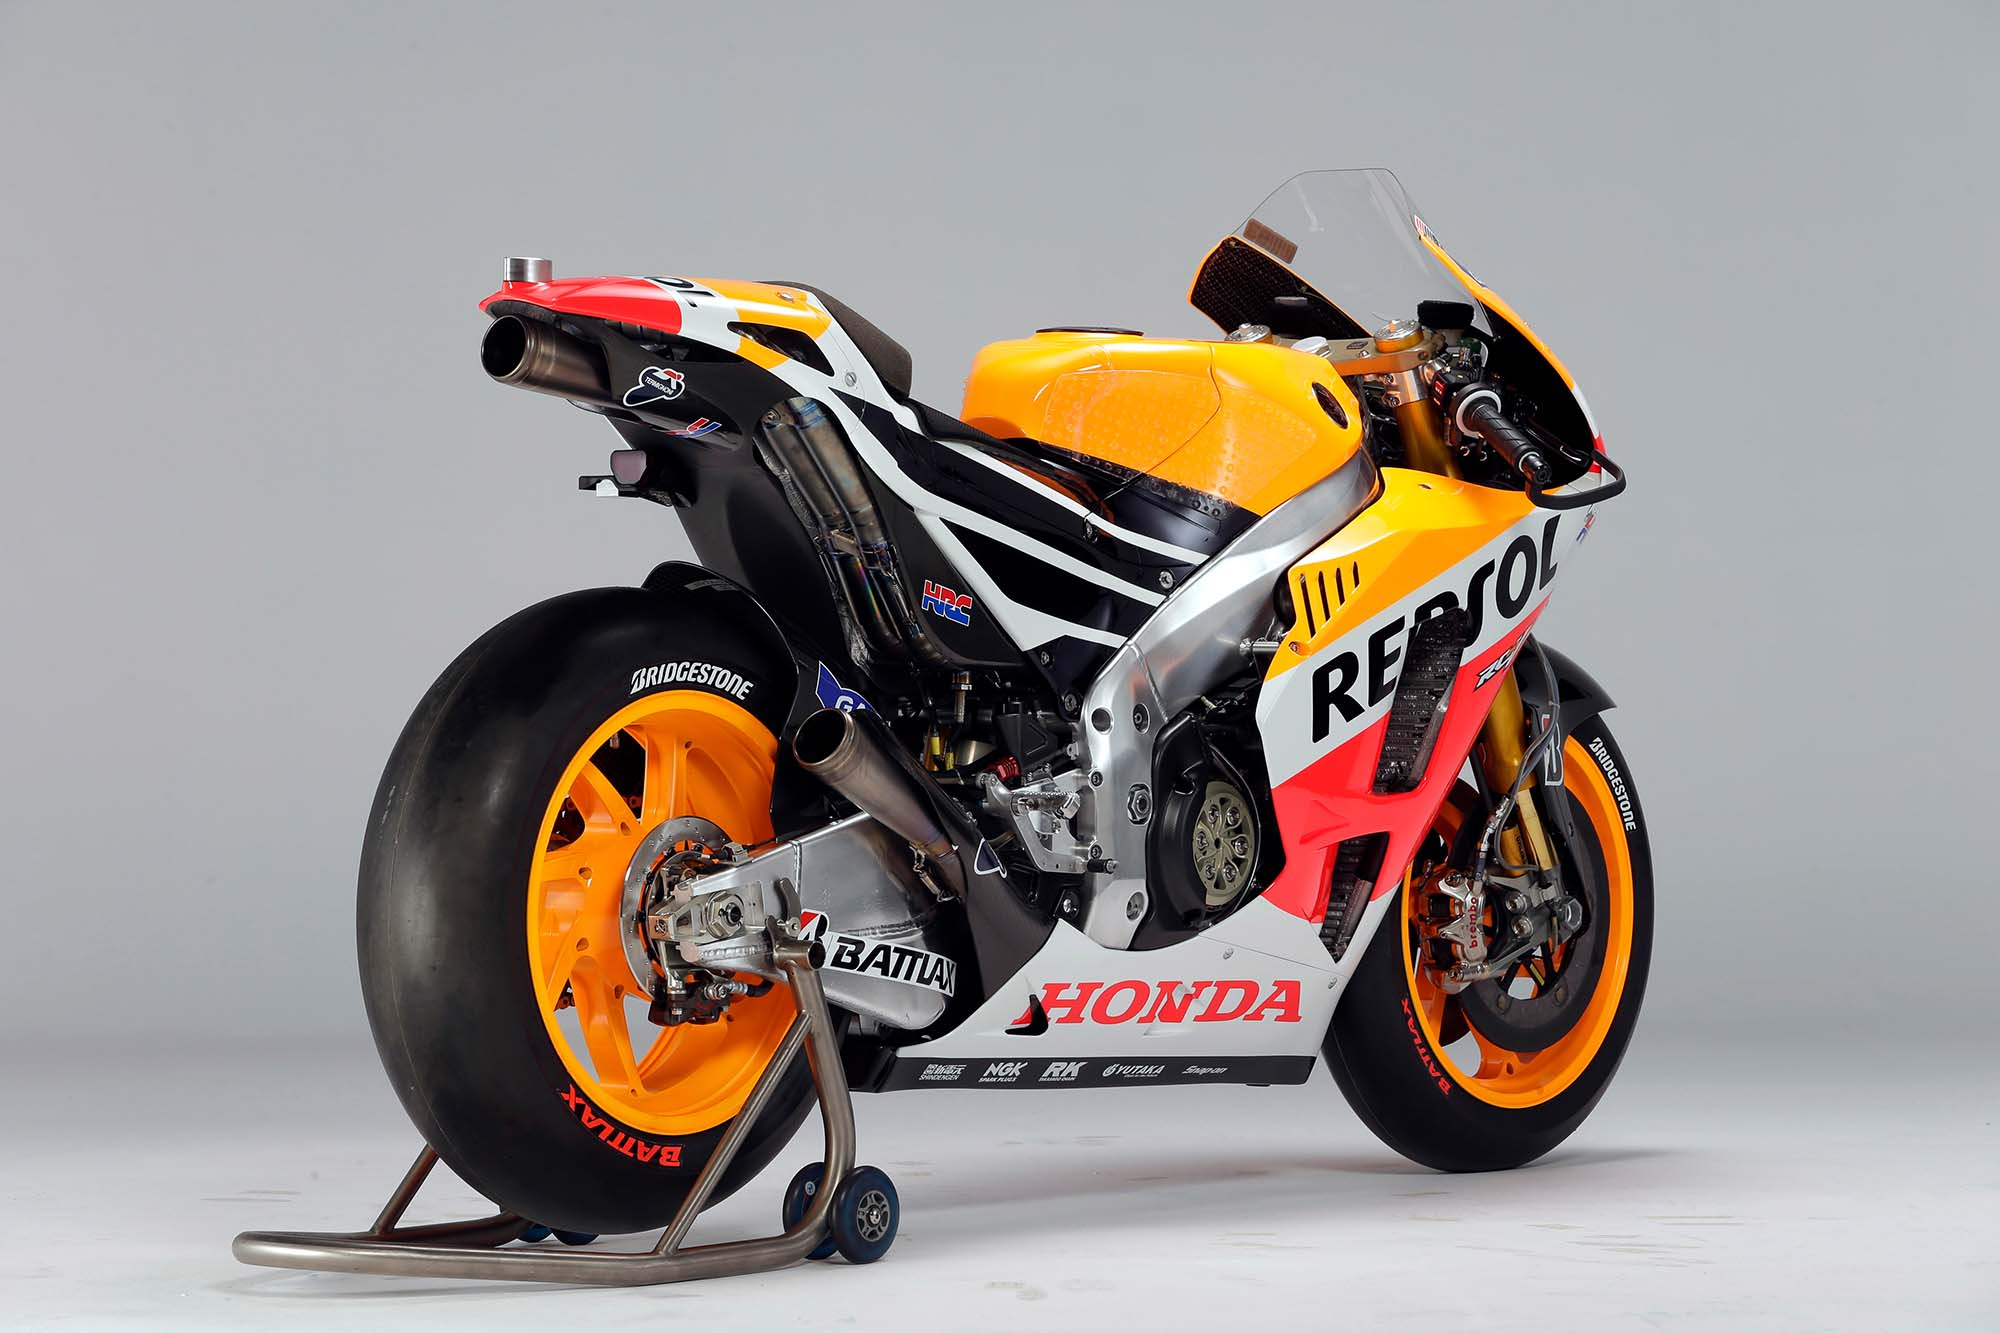 repsol bike wallpaper 49634